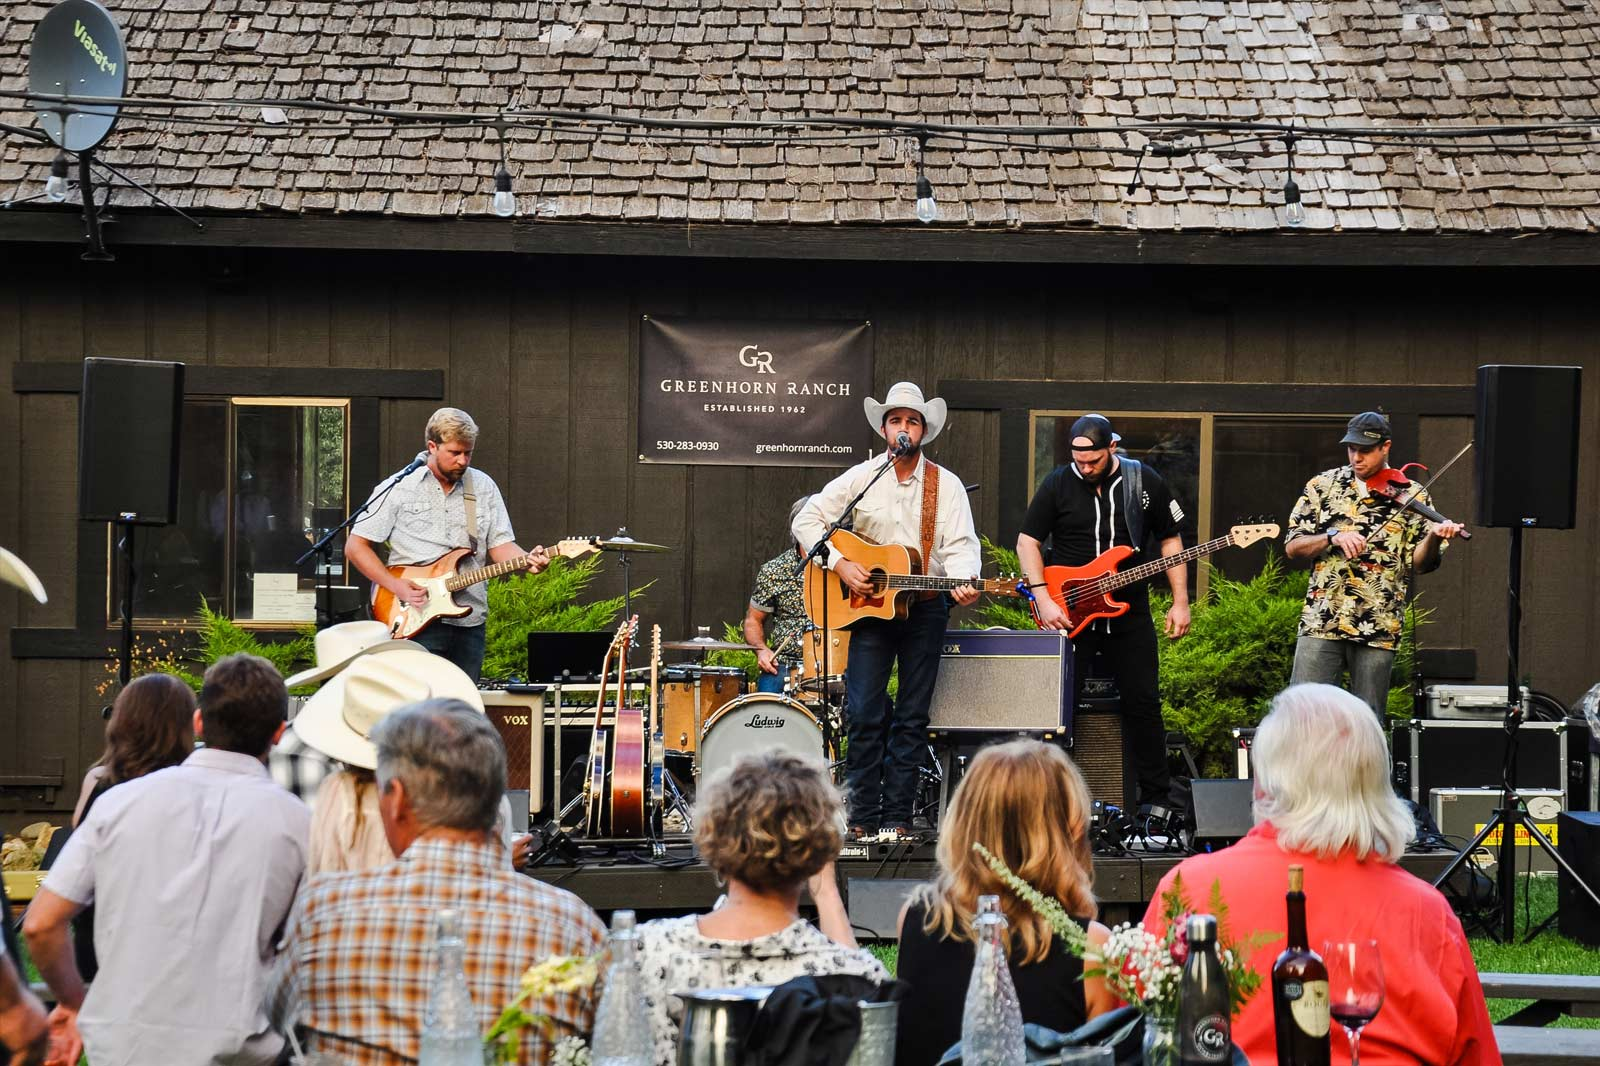 Live outdoor music during dinner at Greenhorn Ranch